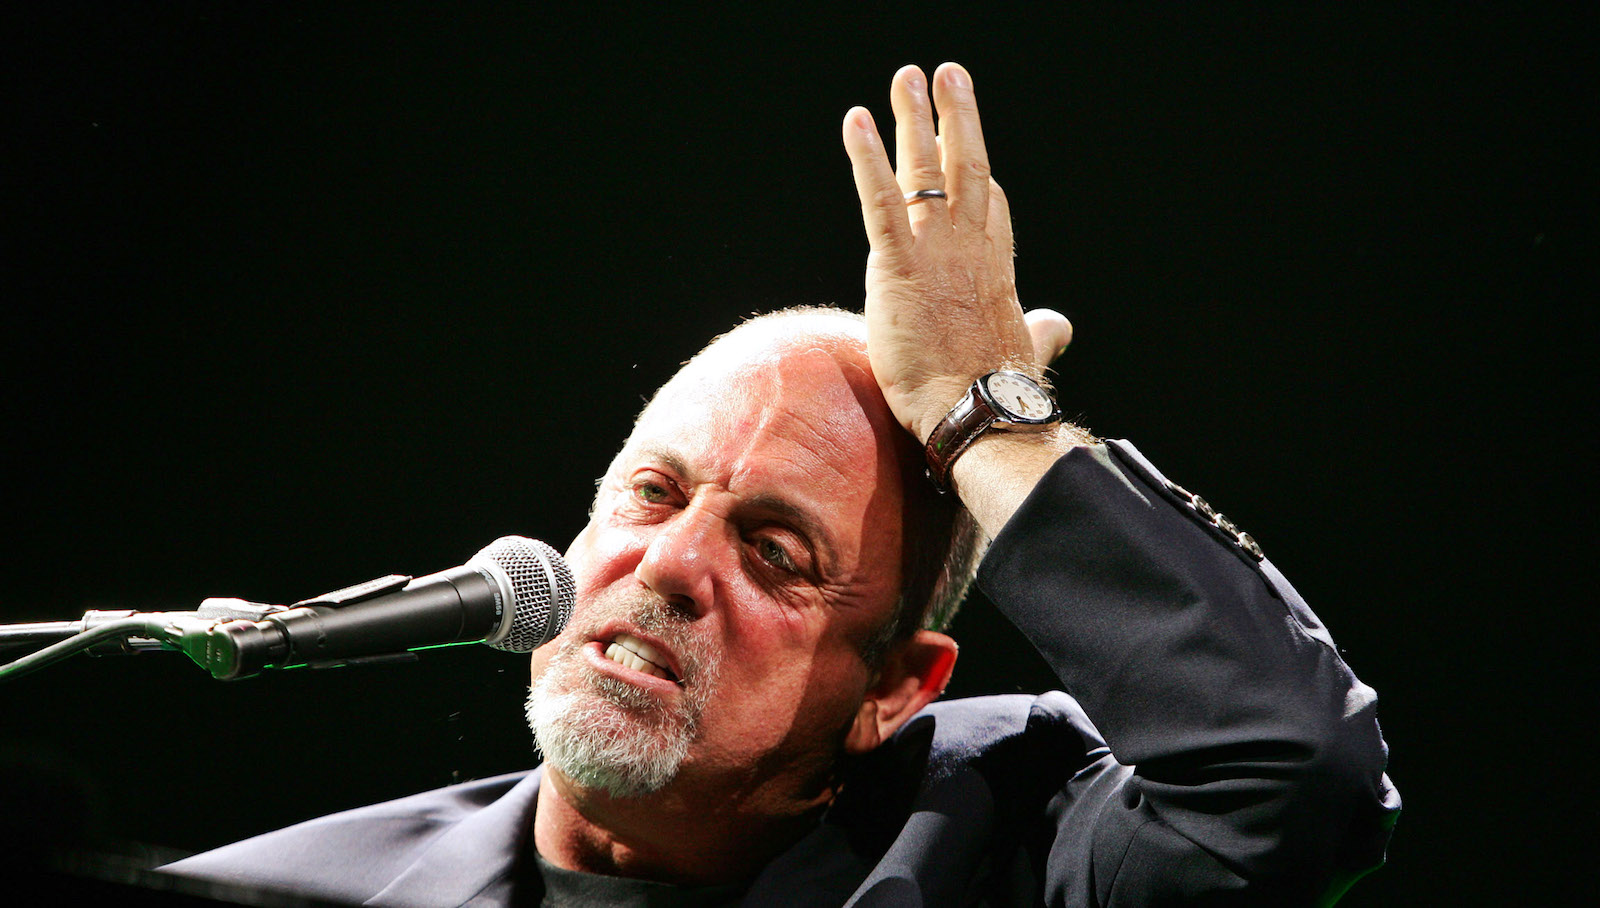 Six-time Grammy award winner Billy Joel performs for the first time in Johannesburg October 26, 2006. REUTERS/Siphiwe Sibeko (SOUTH AFRICA) - GM1DTUPALNAA